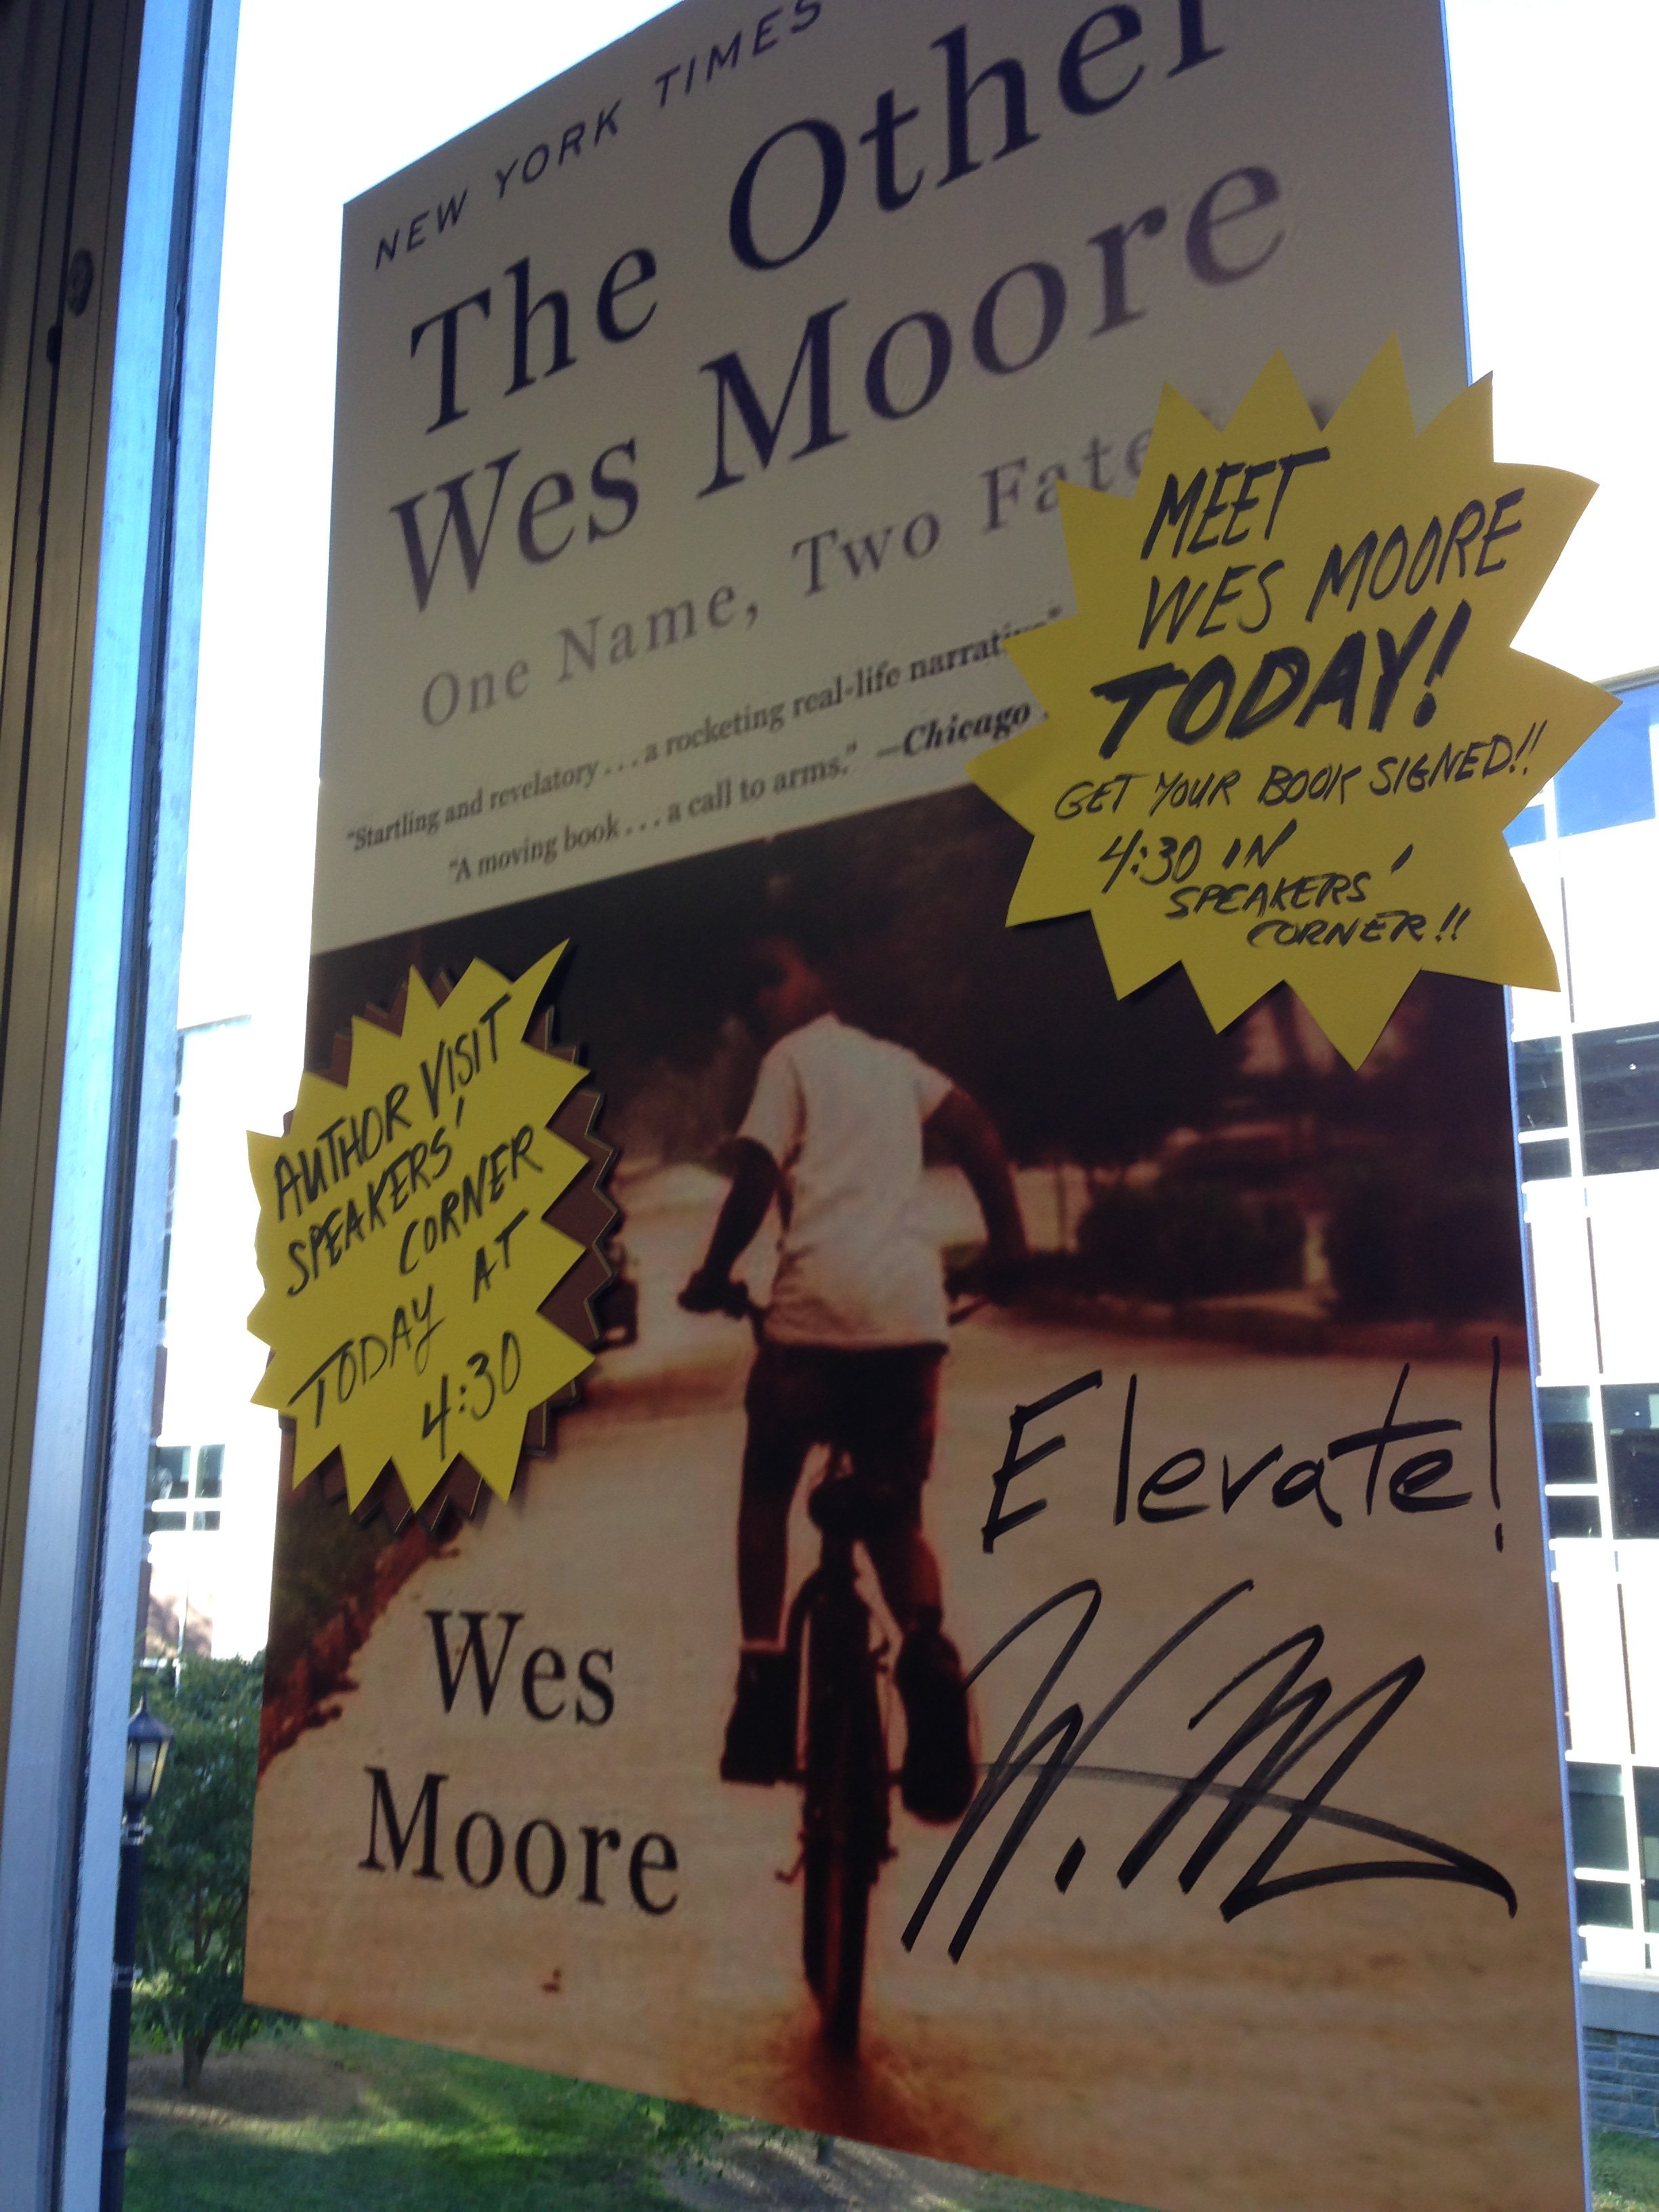 A visit from Wes Moore, author of the One Book Villanova 2014-15 selection, The Other Wes Moore